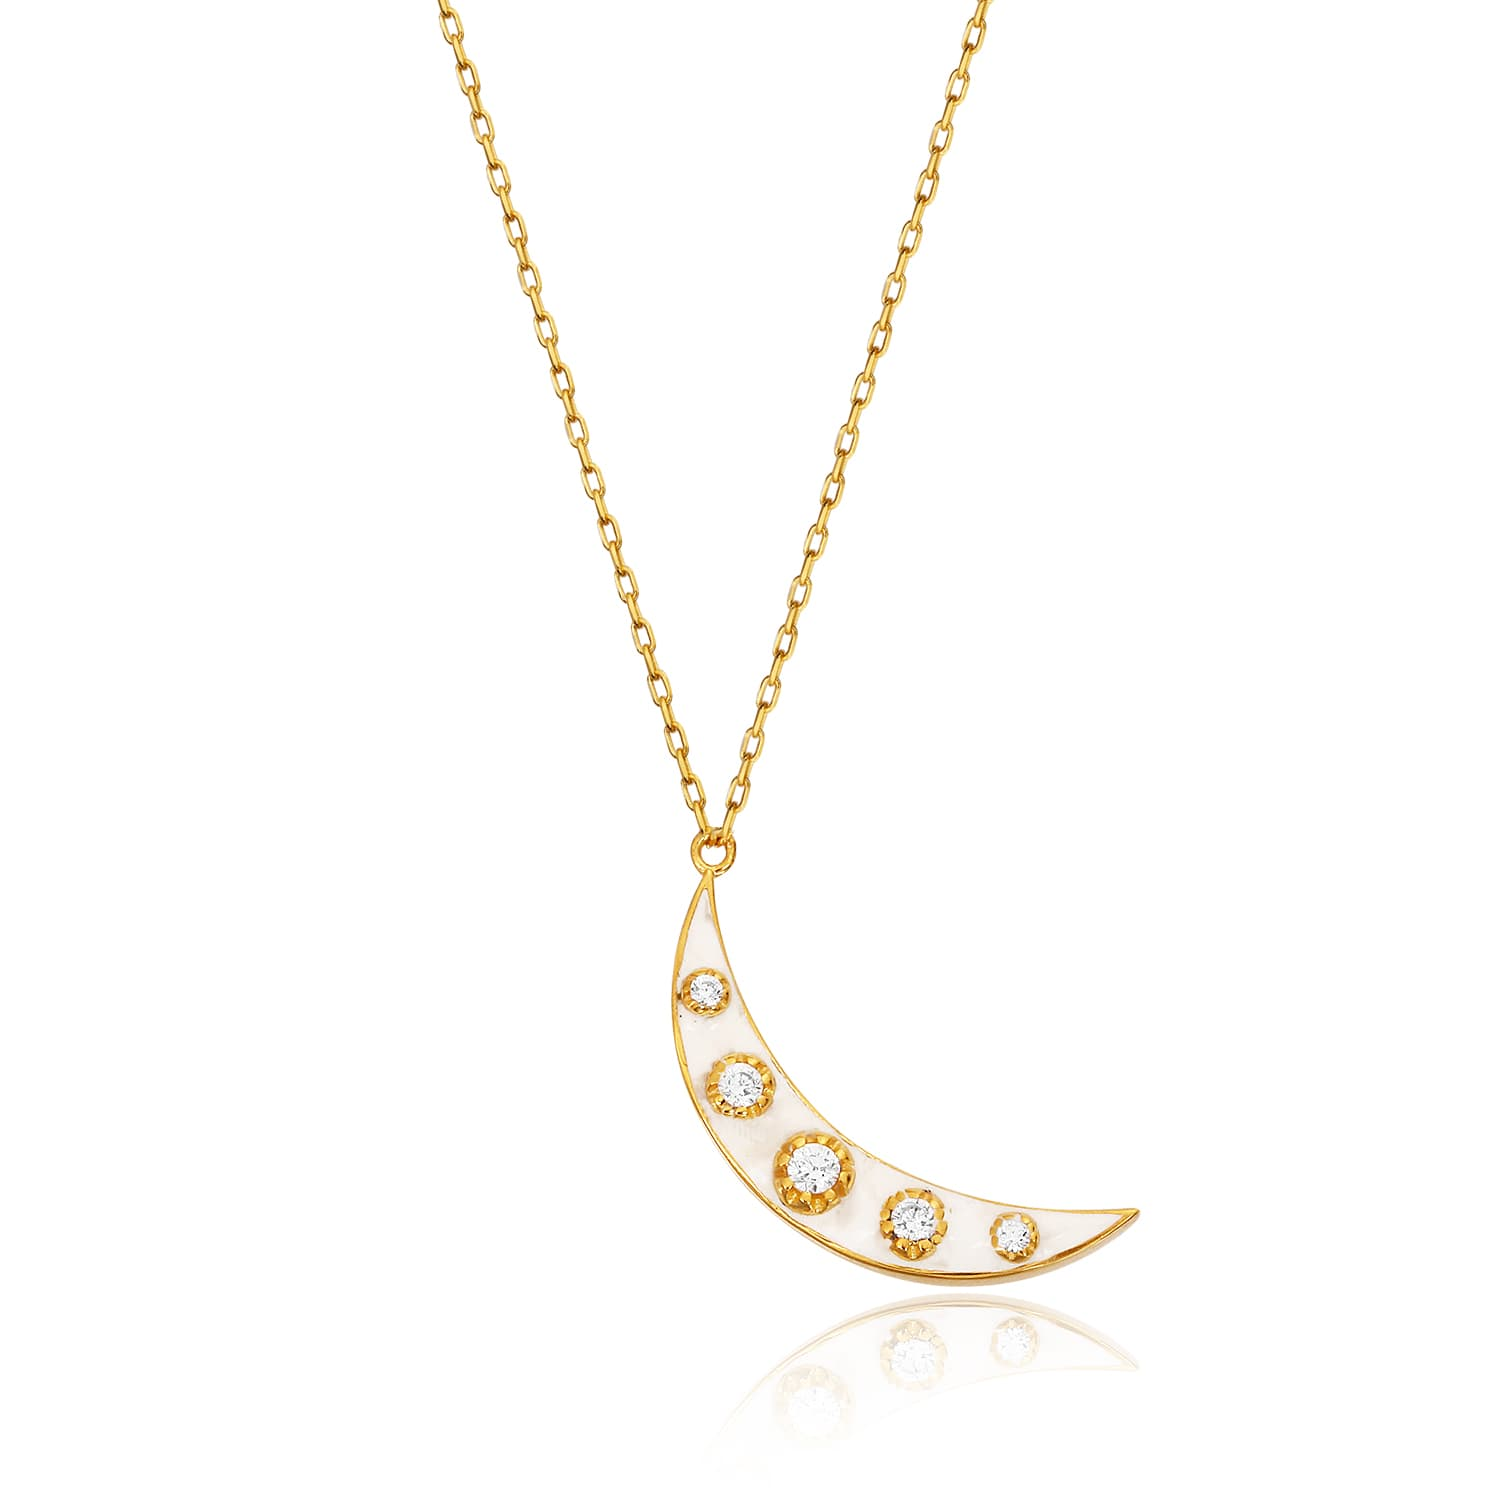 LUNA WHITE MINNED NECKLACE